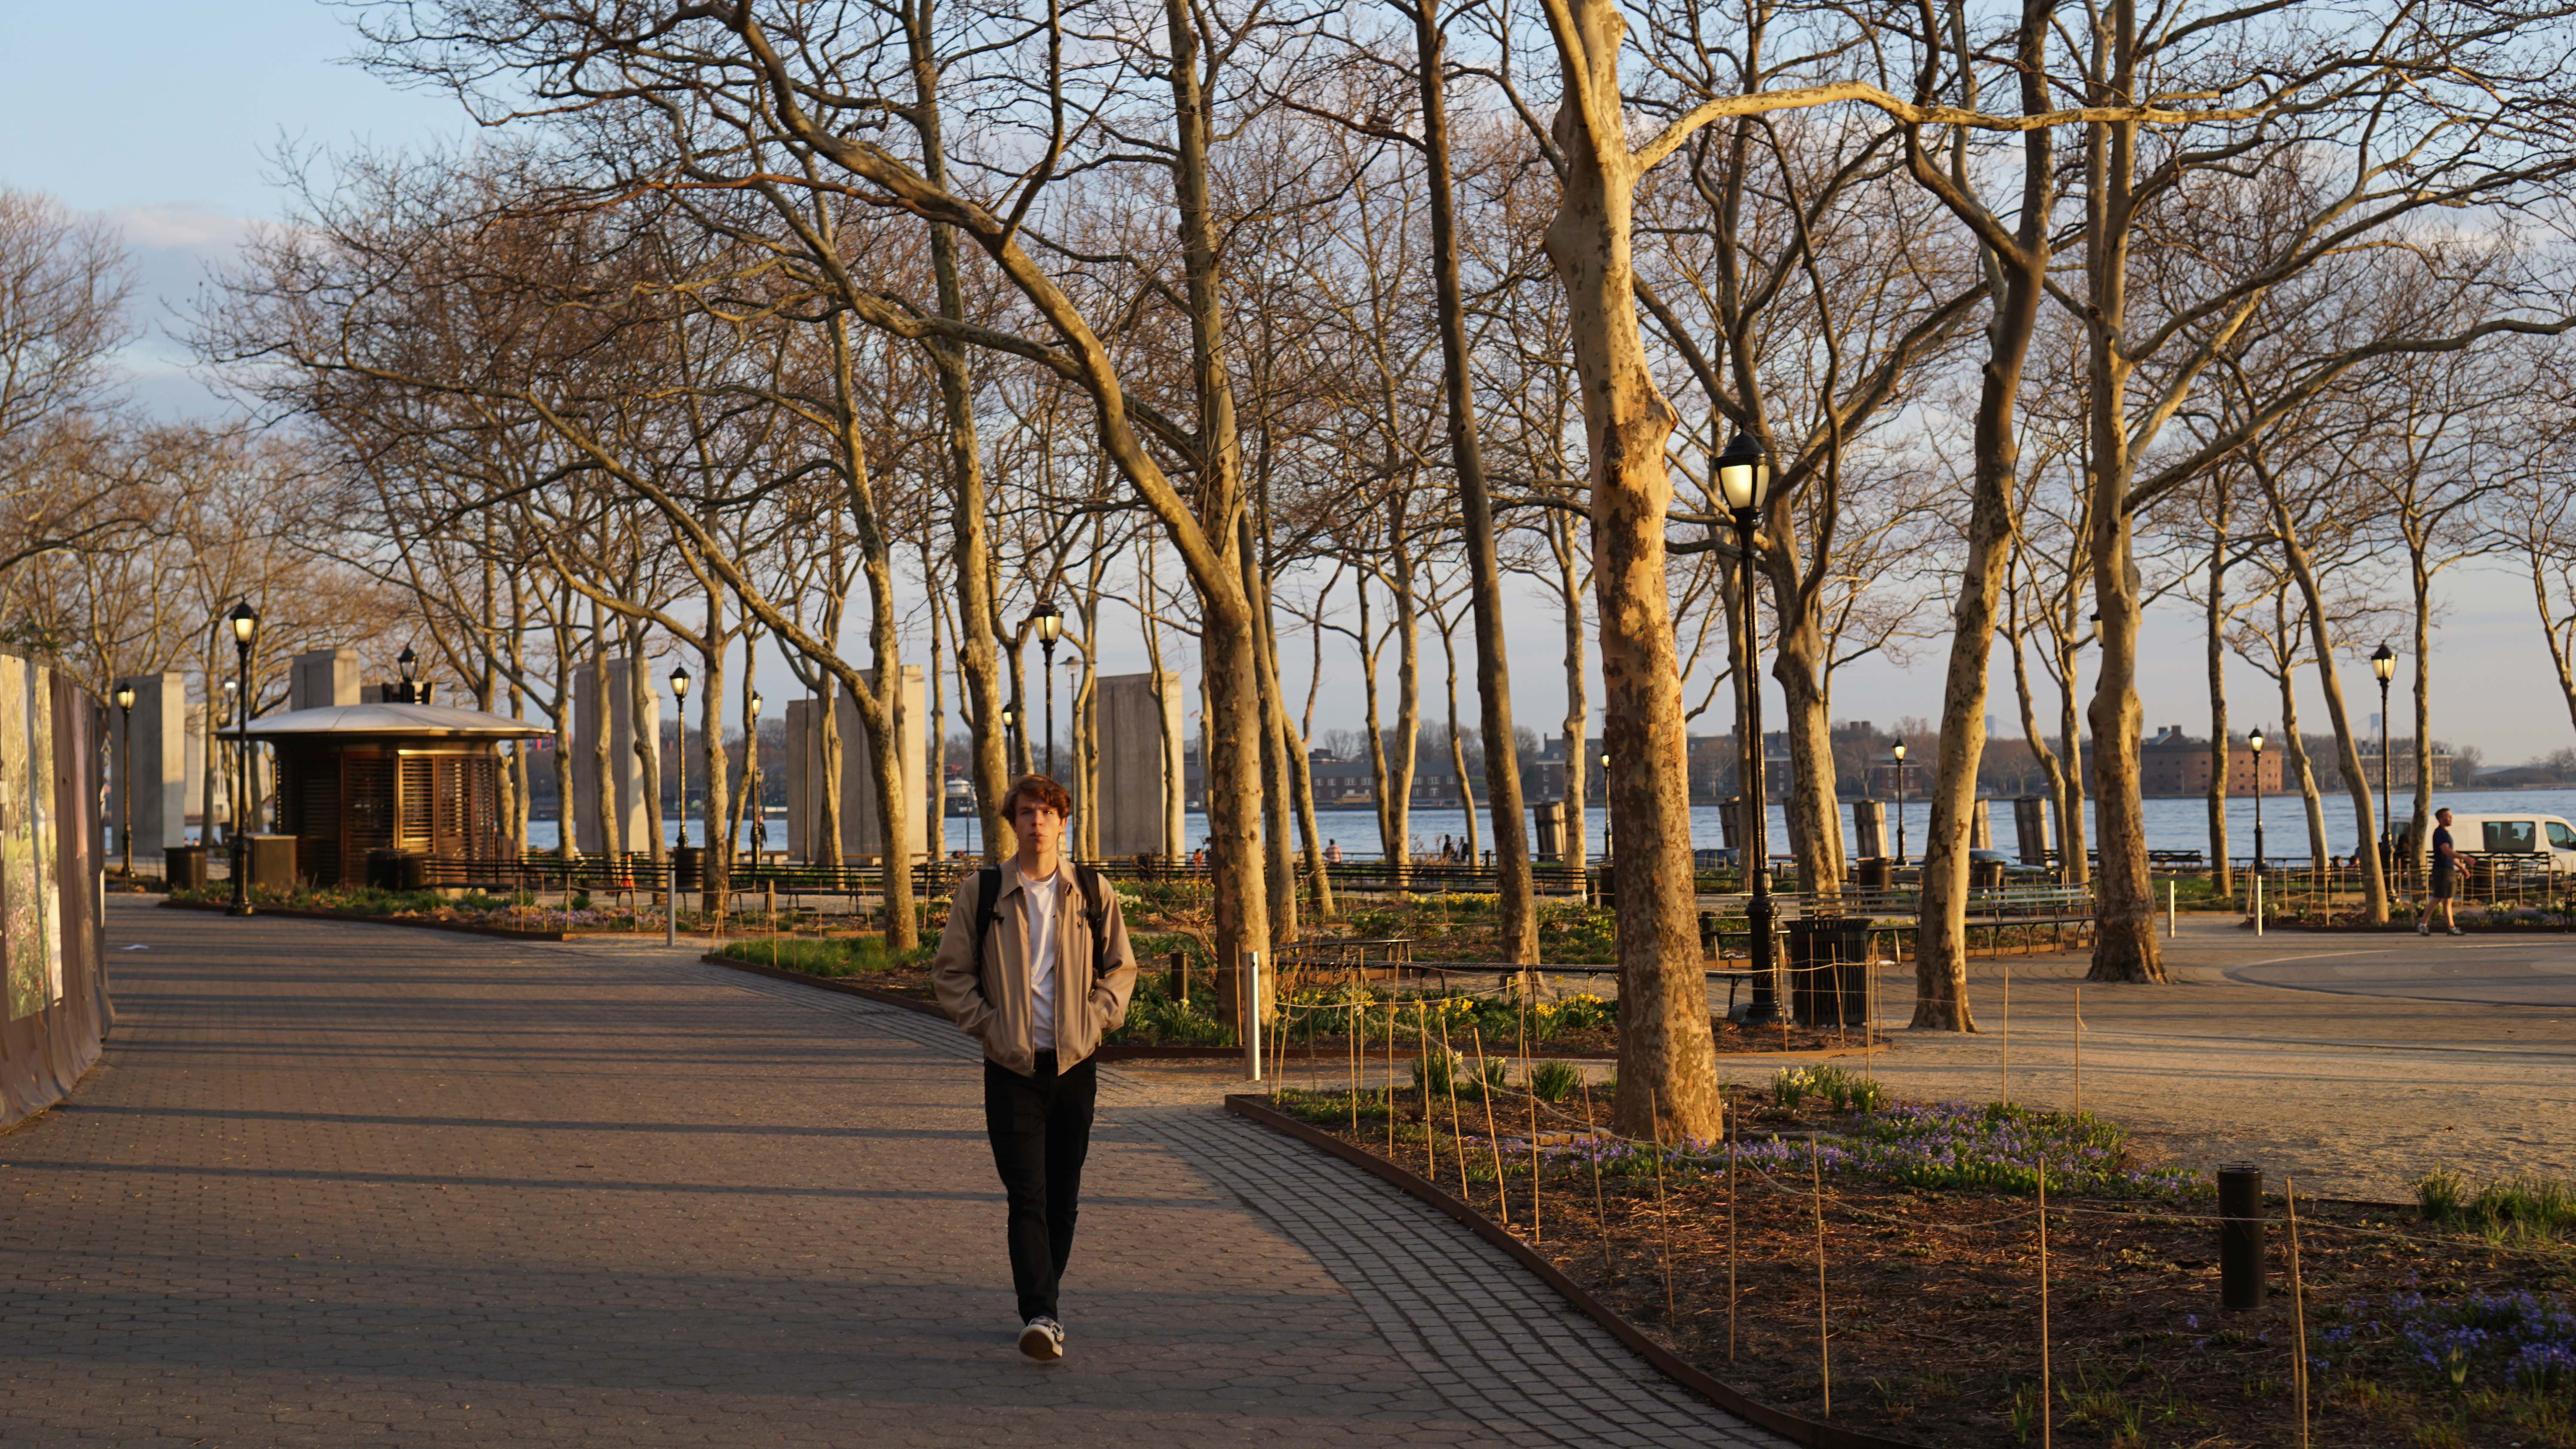 Battery Park Conservancy open 8